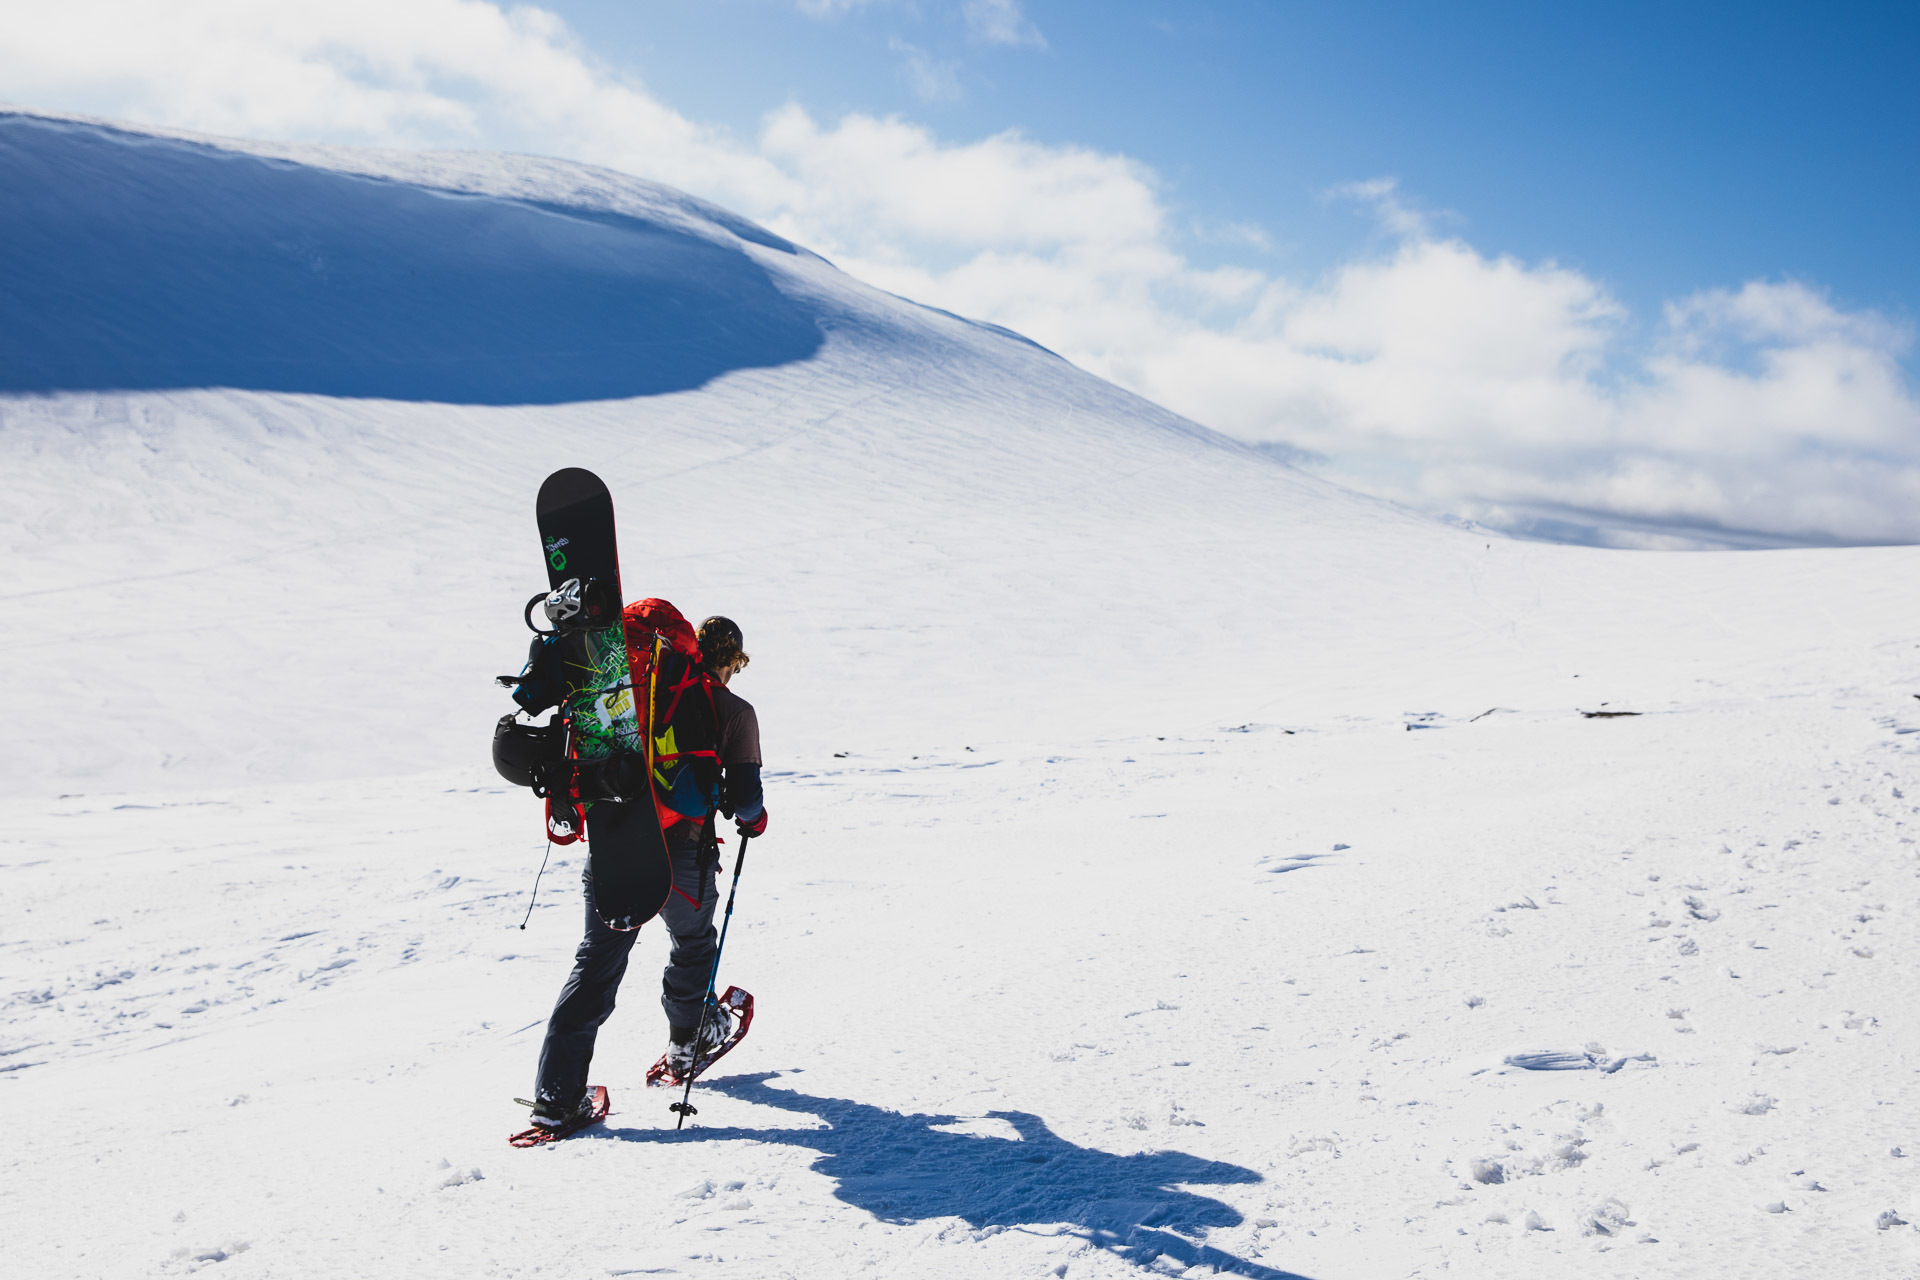 Sea to Summit in Australia – All In A Day's Work, guy williment, snow shoe, snowboard, backcountry, nsw